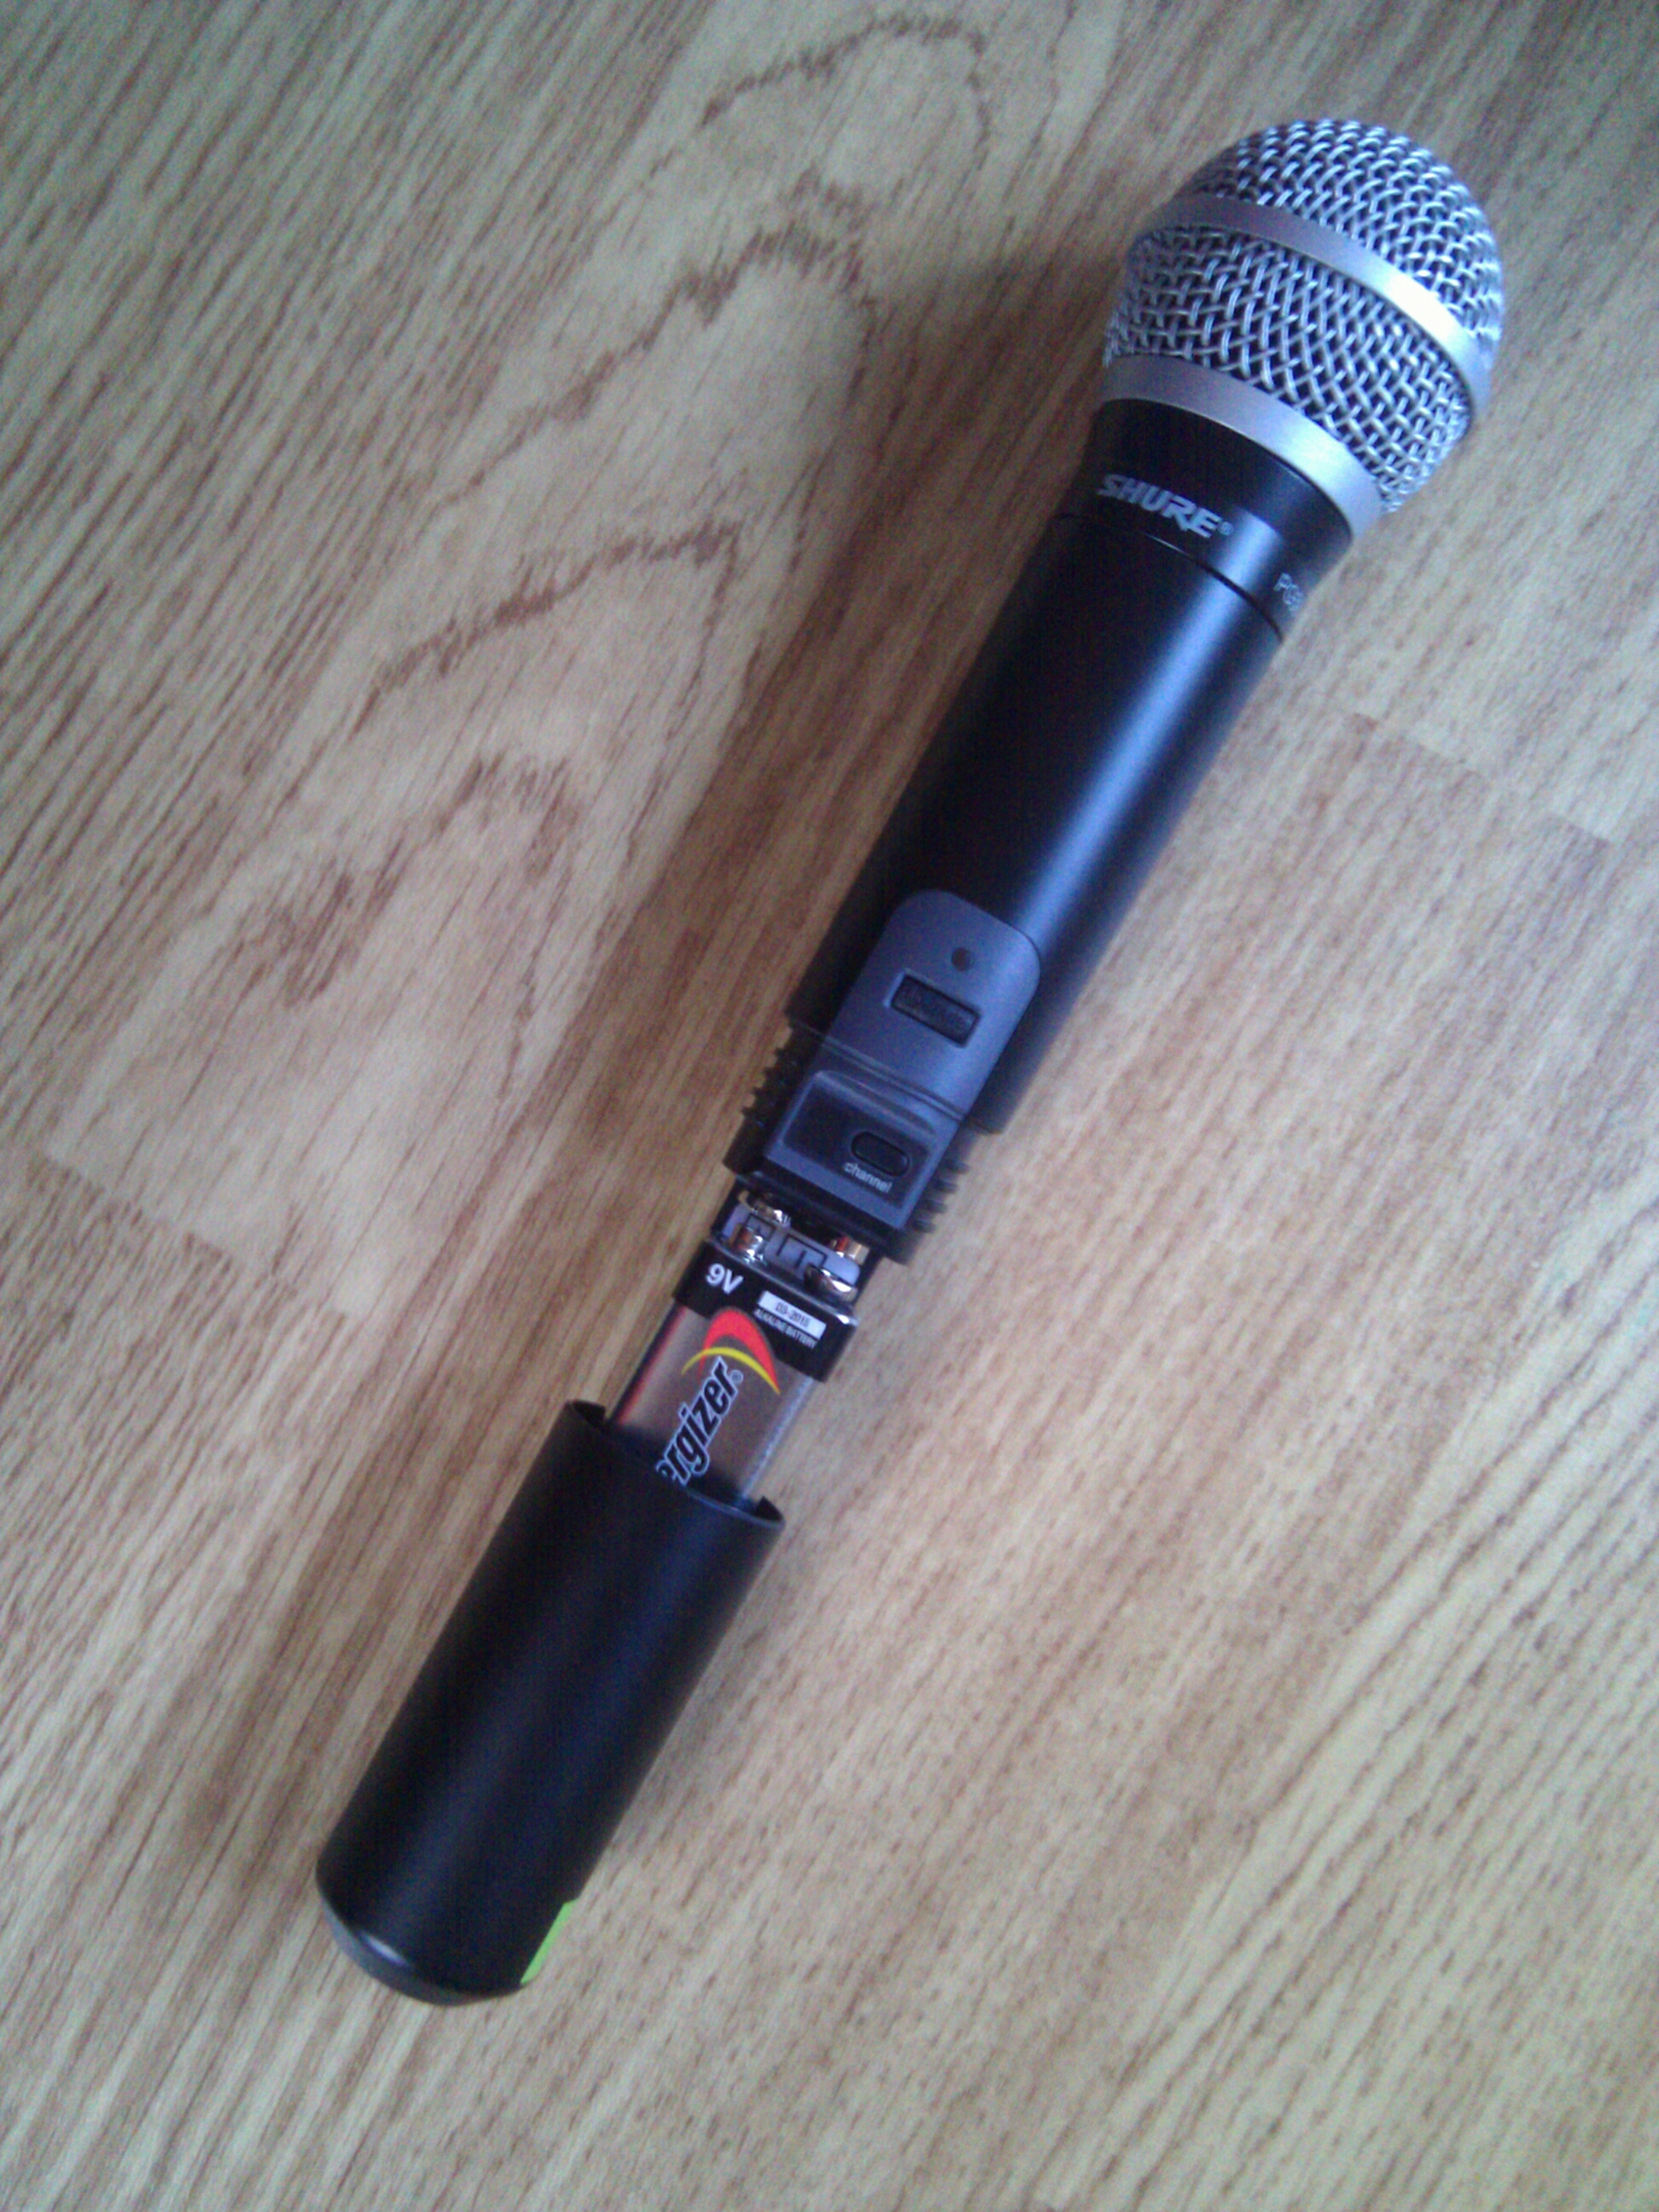 Shure Microphones Concection Microphone 4 Pin Wiring Diagram Diagrams Mx392 C